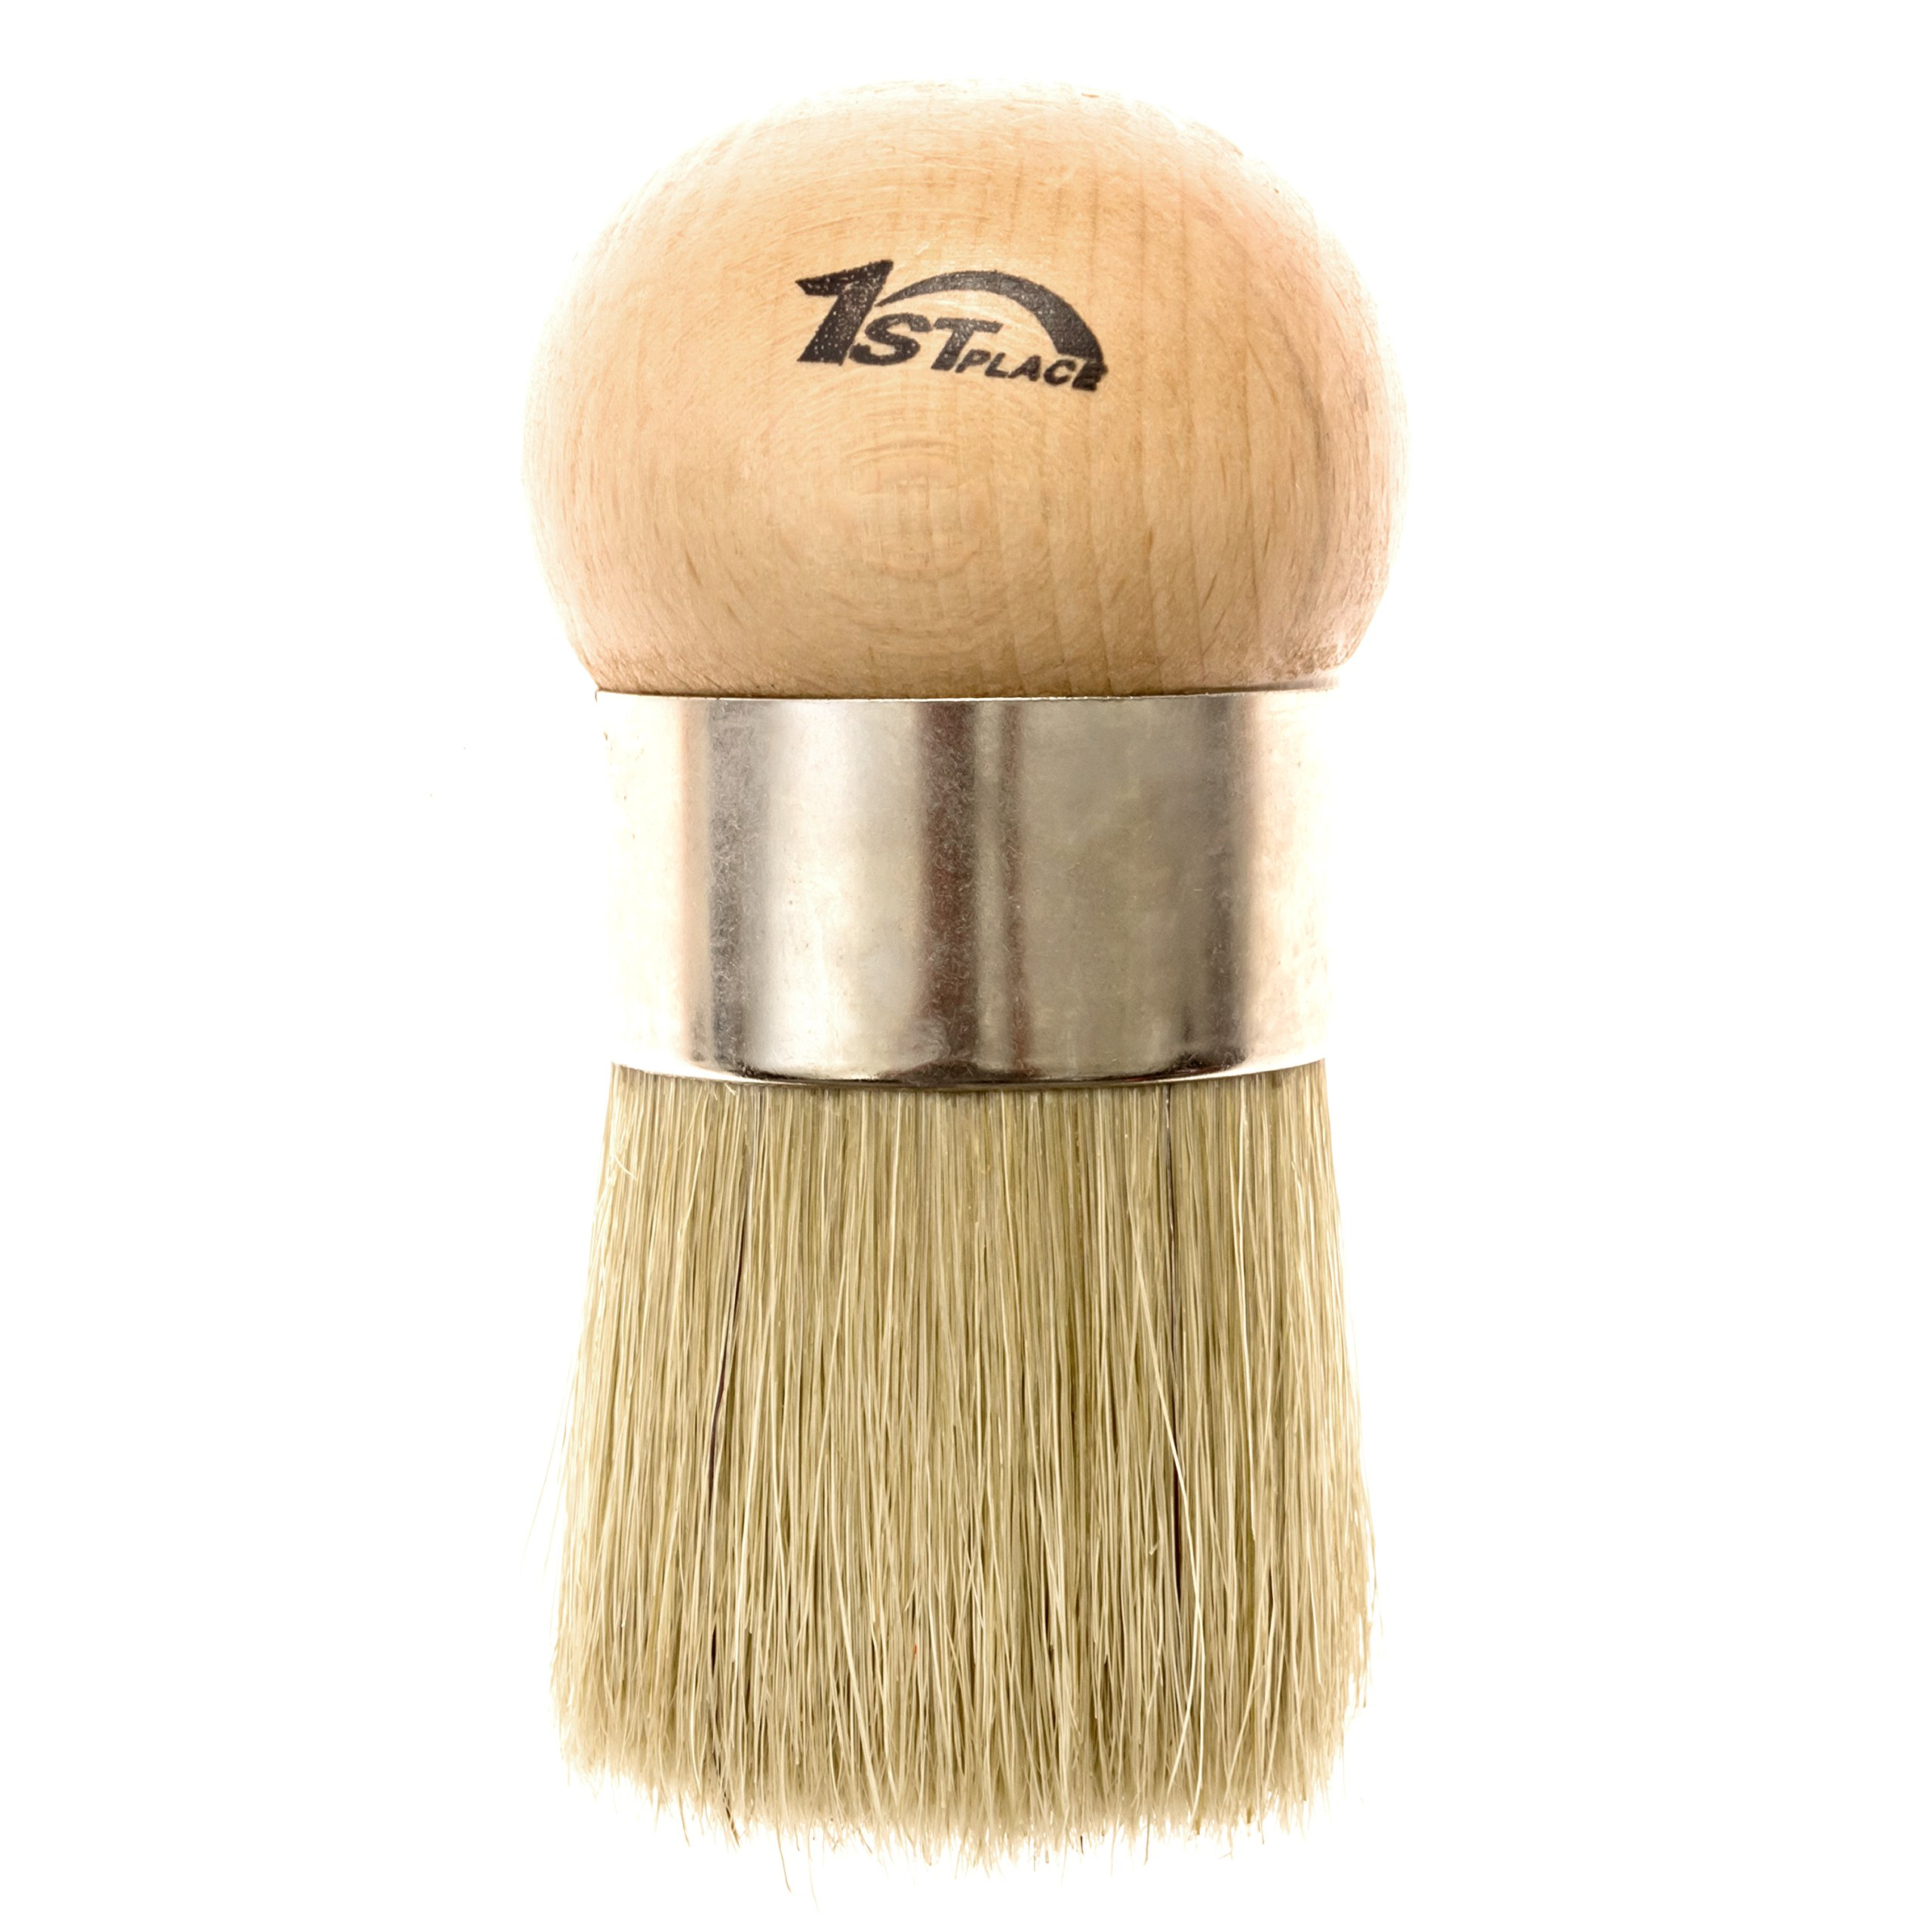 1st Place Products Large Wax & Paint Brush - Comfortable to Use - Great for Arthritic Hands - Hand Made - Natural Bristles by 1st Place Products